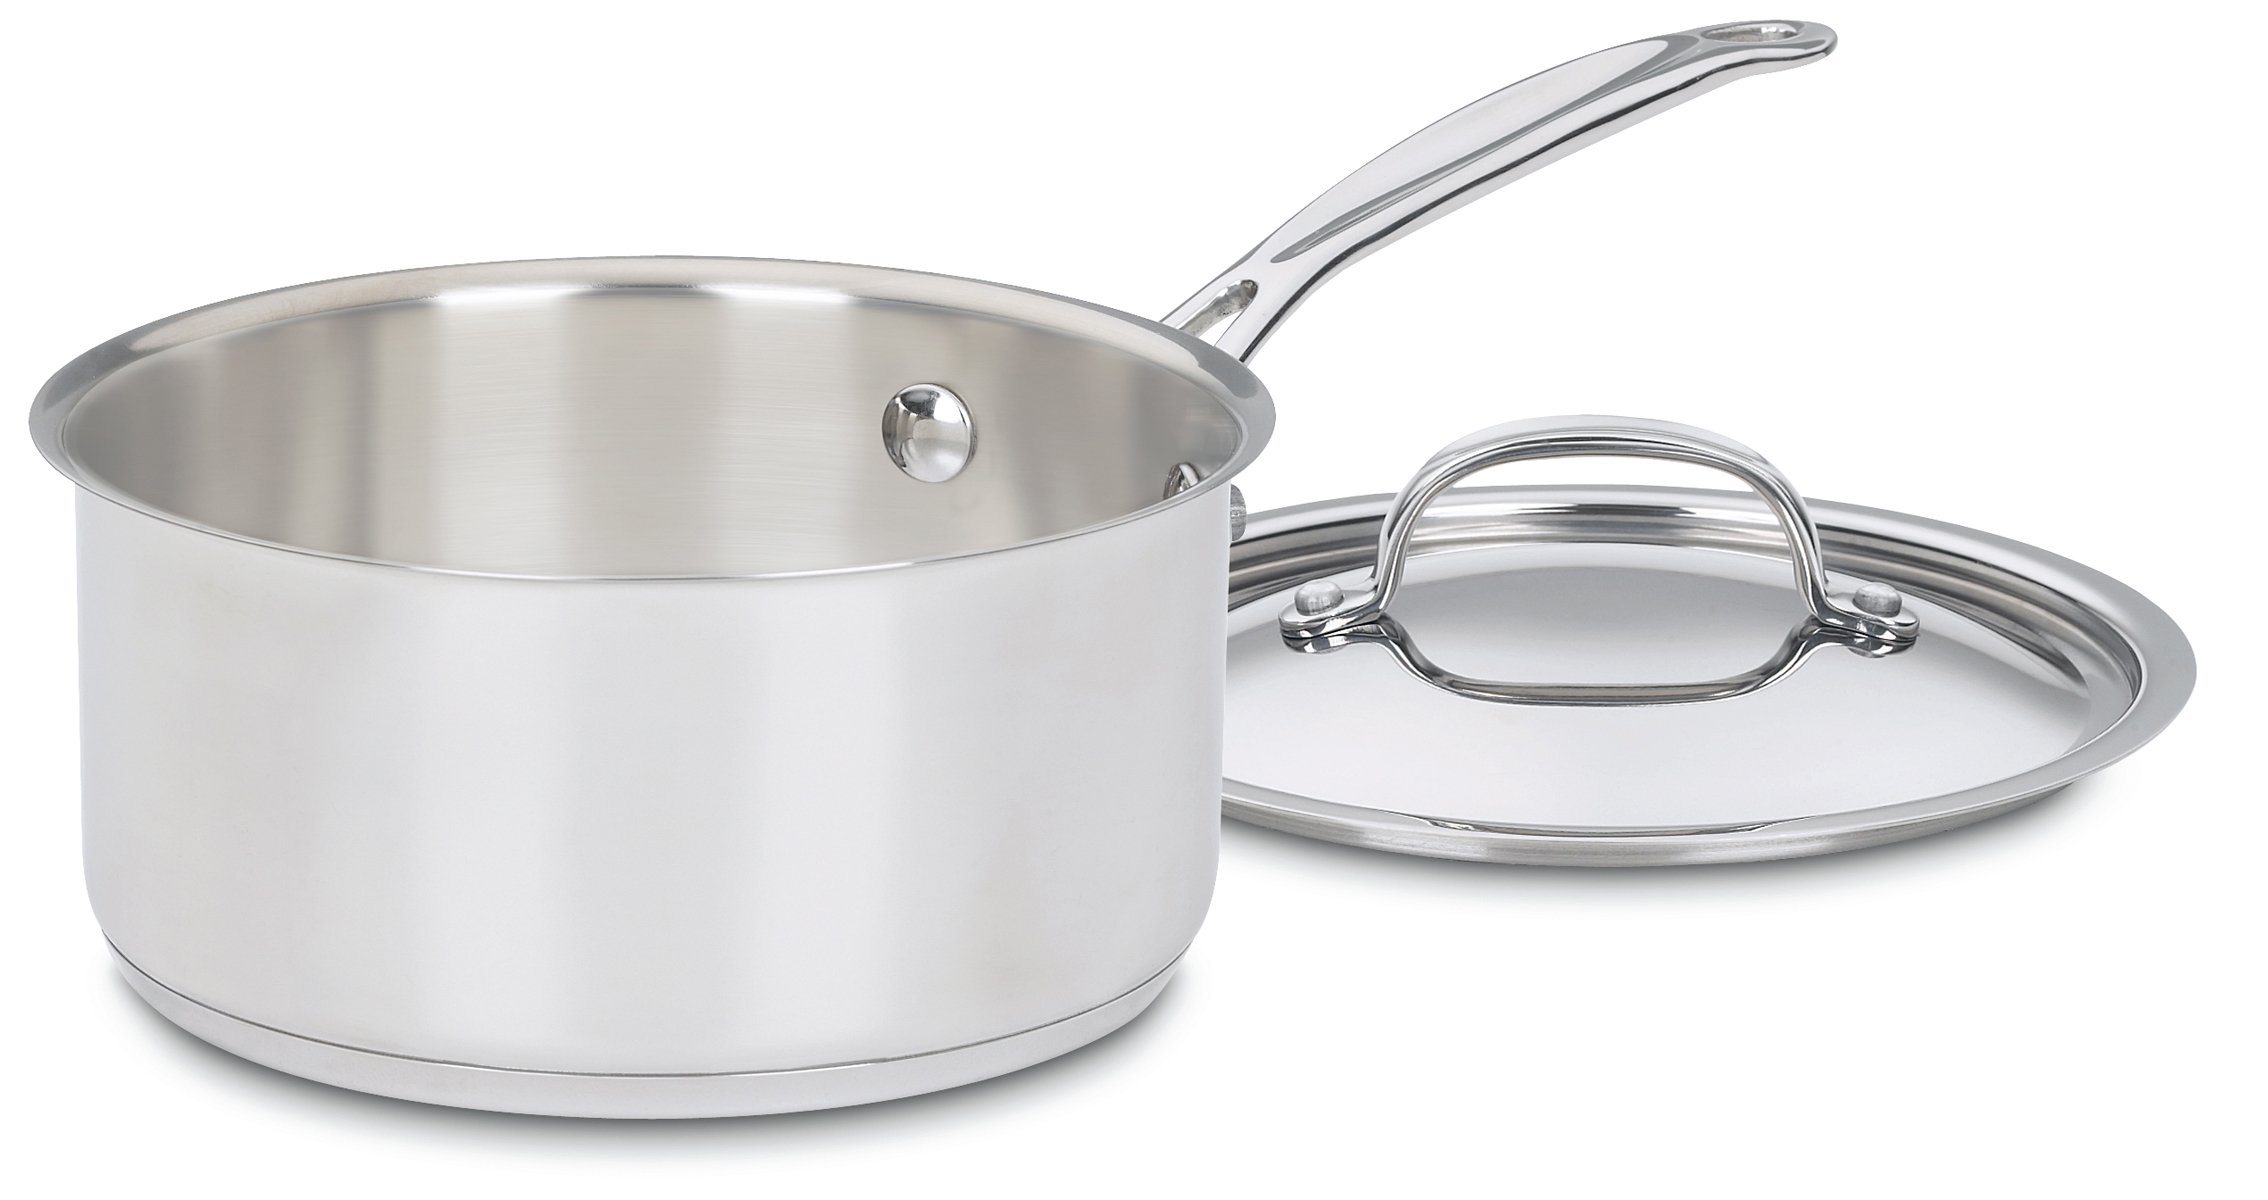 Cuisinart 719-18 Chef's Classic Stainless 2-Quart Saucepan with Cover by Cuisinart